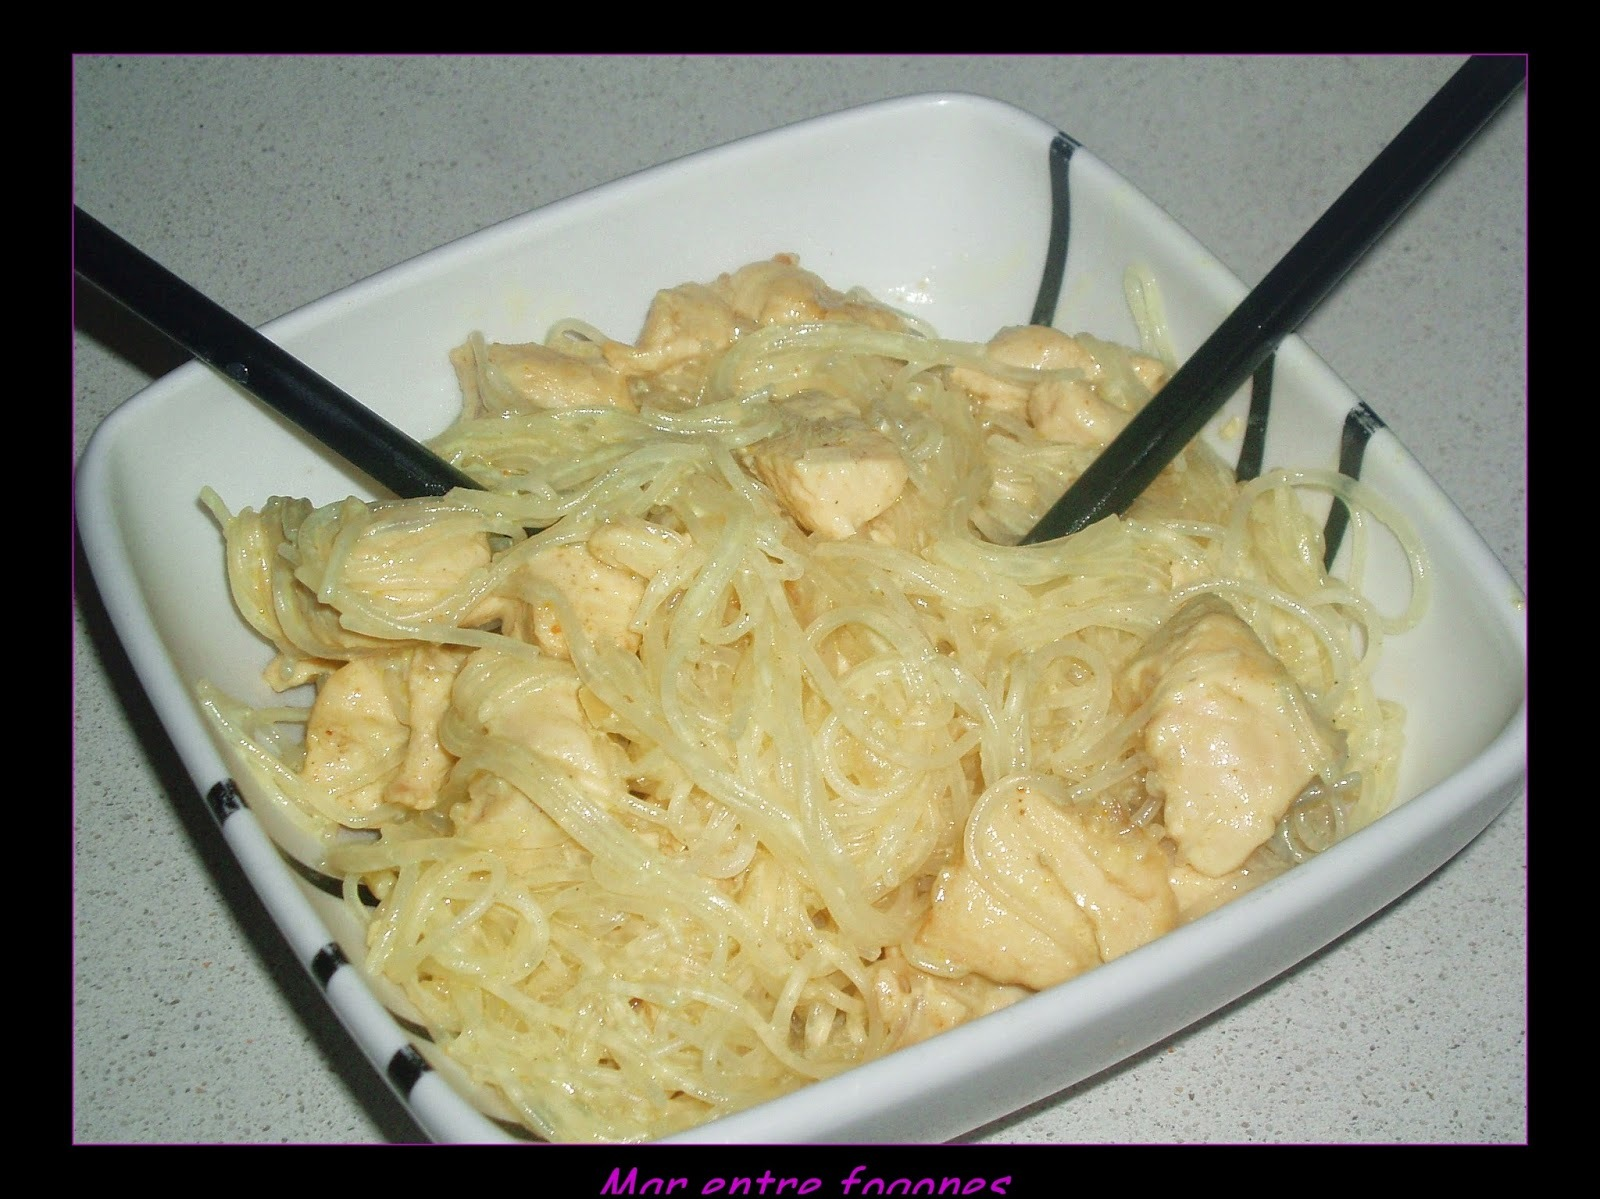 GLASS NOODLES CON POLLO AL CURRY